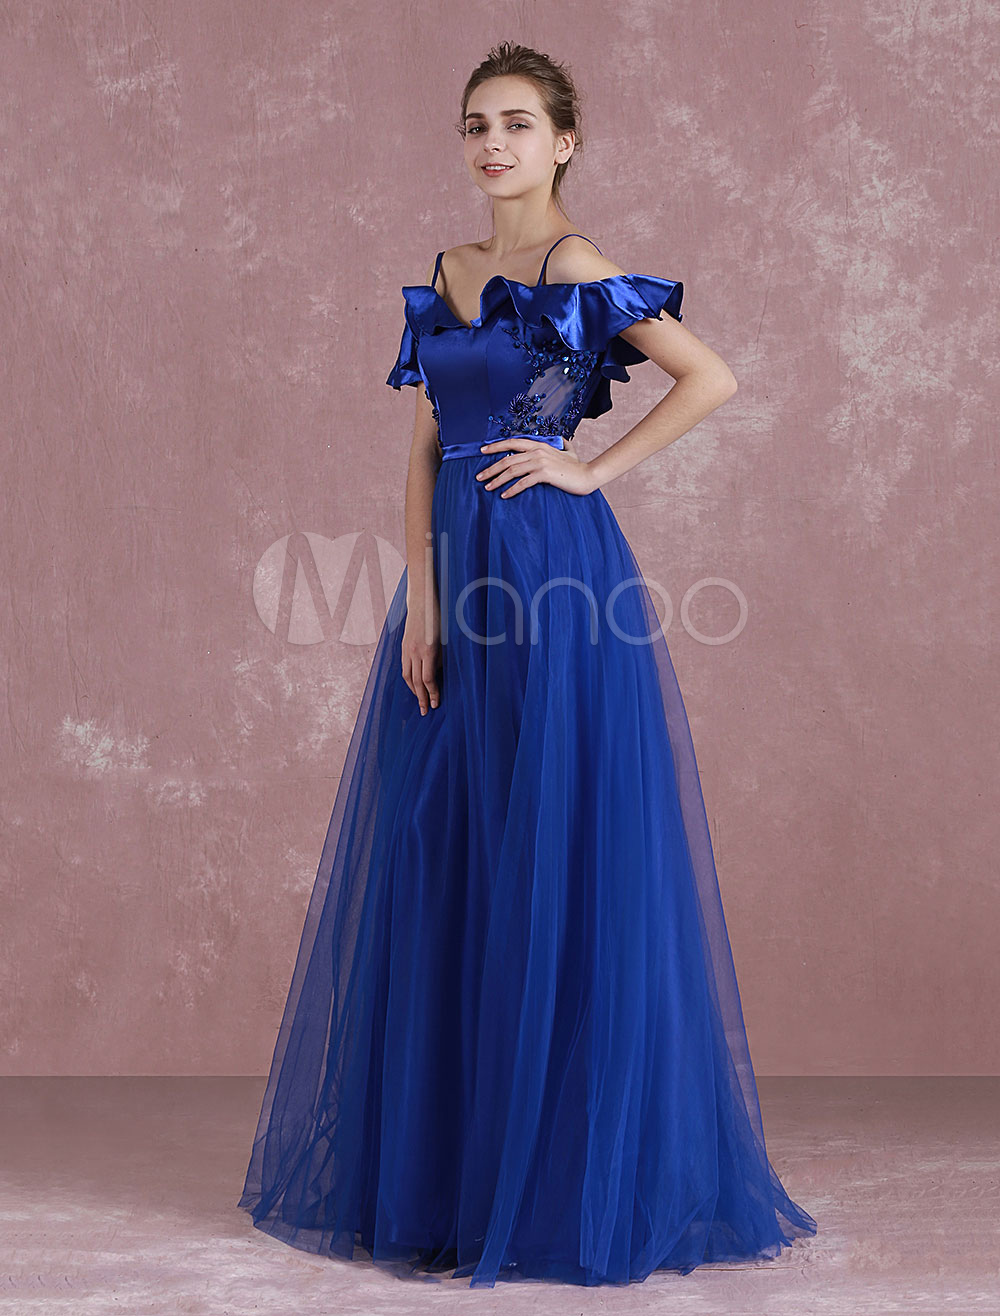 Buy Long Evening Dress Bohemian Strap Backless Party Dress A Line Royal Blue Tulle Floor Length Evening Gown With Ruffle Beading for $76.49 in Milanoo store